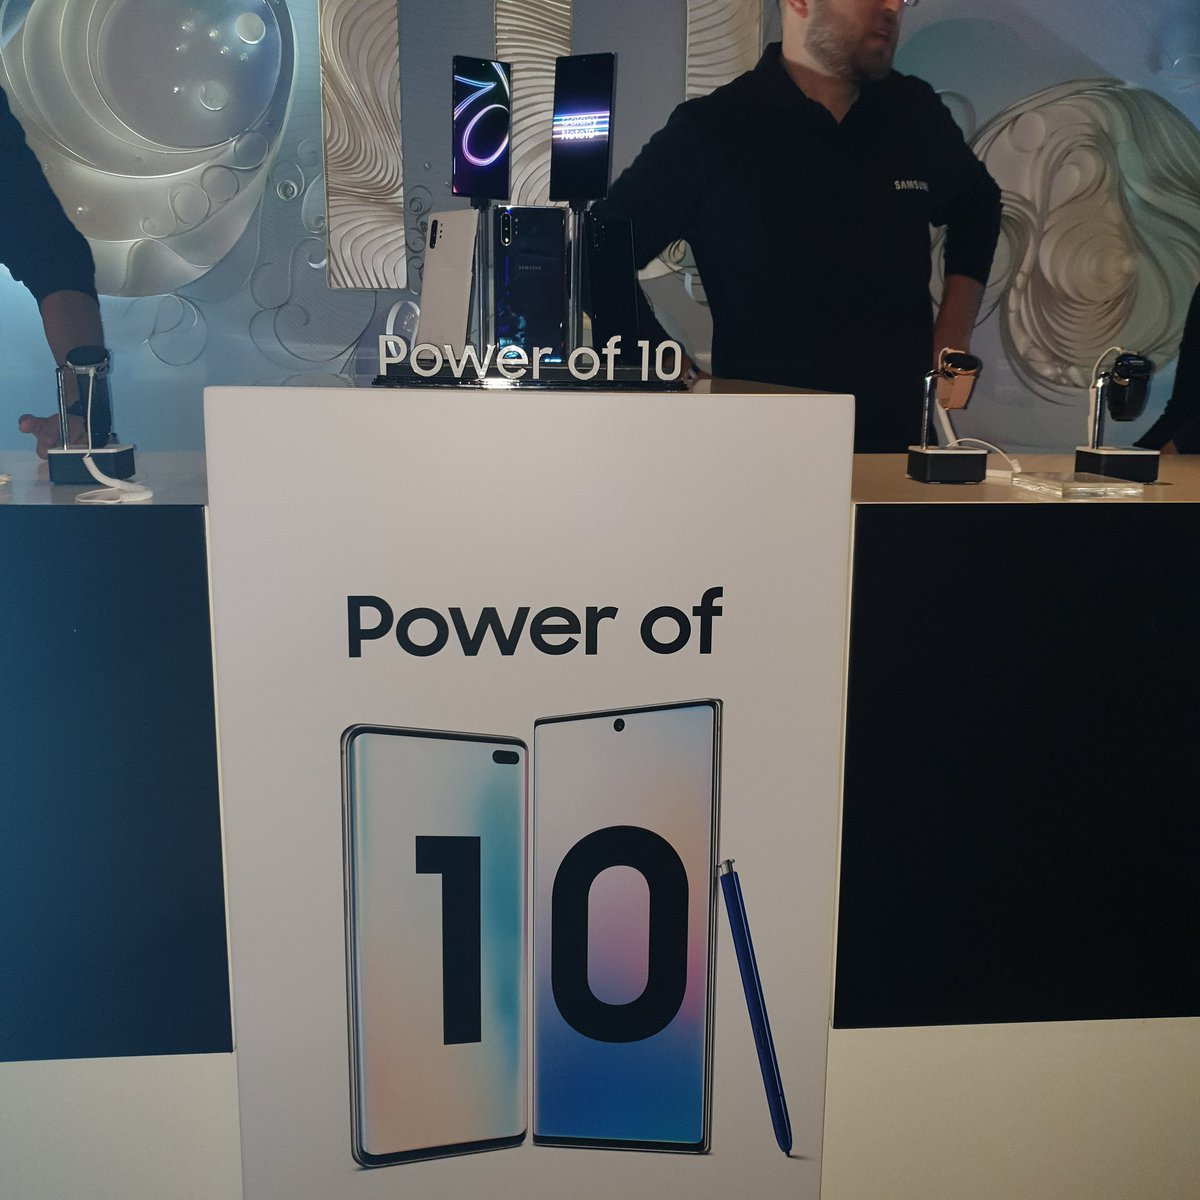 #PowerOf10 Samsung the best in innovation nd Tec with the world's best QLED TVs Ref Wm nd the best Smart Phones Samsung galaxy 10 fold over <br>http://pic.twitter.com/baD1C5zdOJ